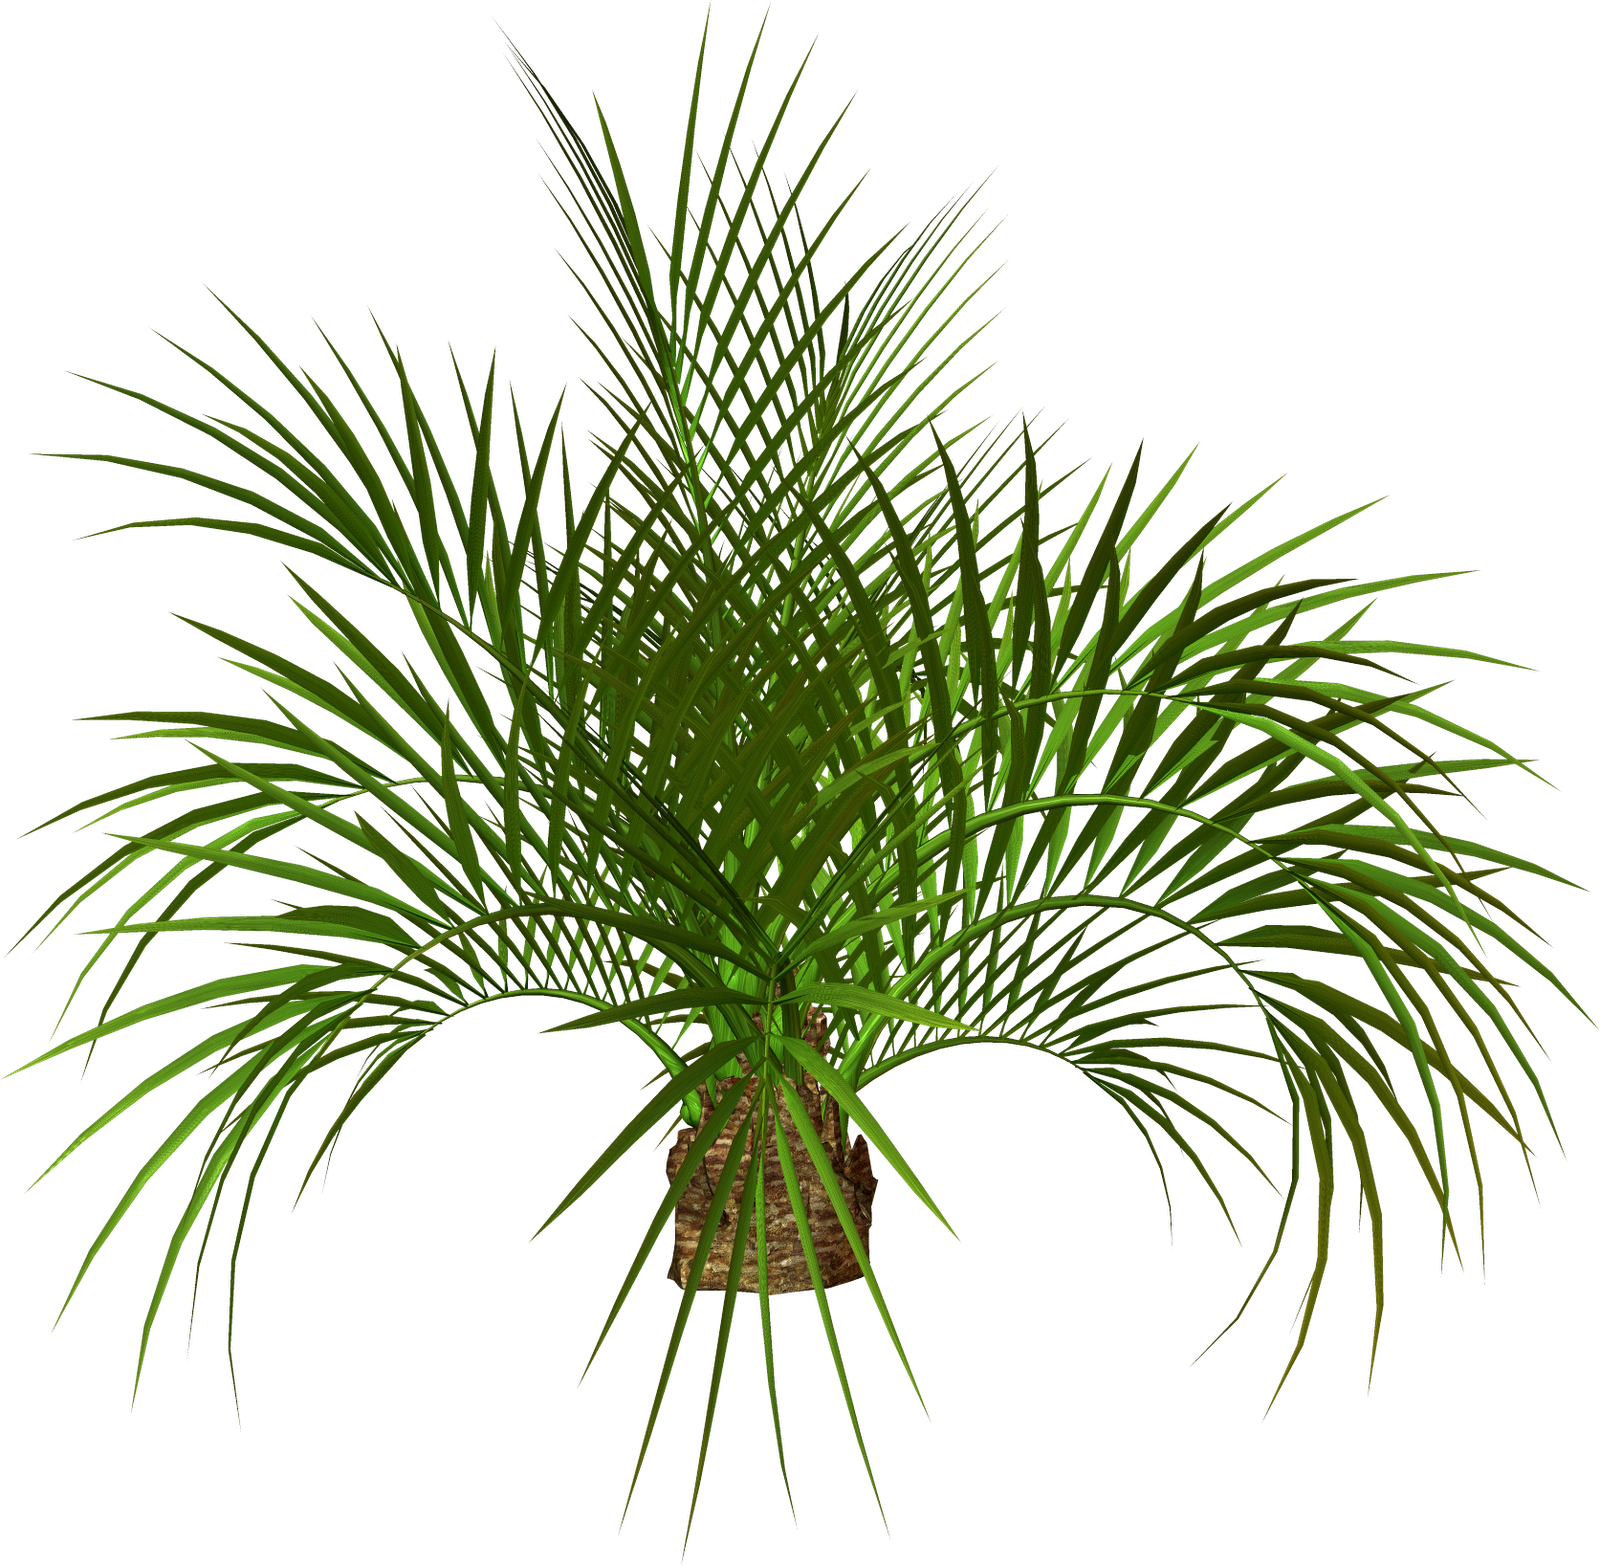 Palm frawn png. Tree transparent images free